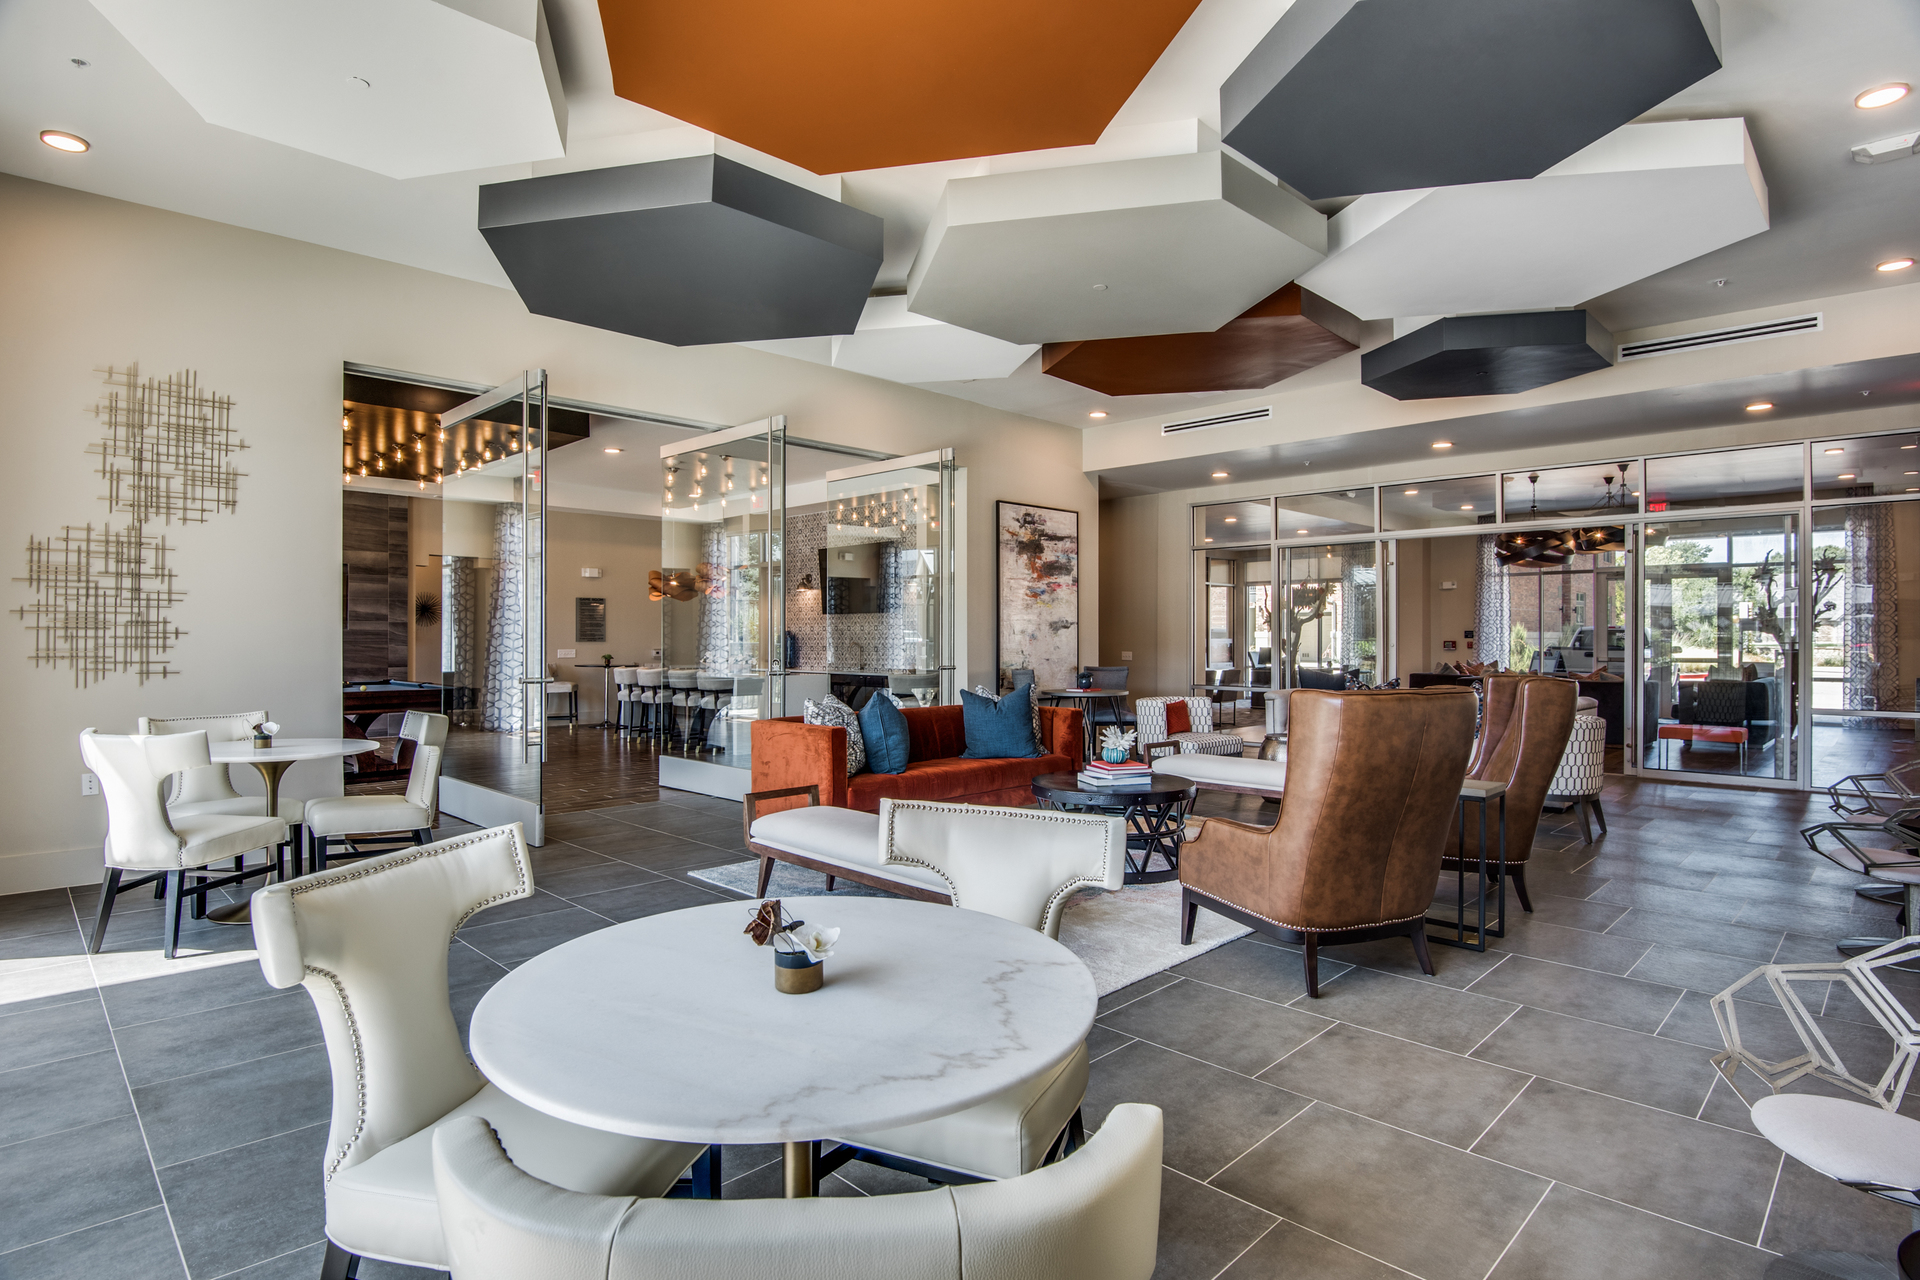 Beautiful lounge area for the residents at Hillstone River Walk, by Hensley Lamkin Rachel, Inc.